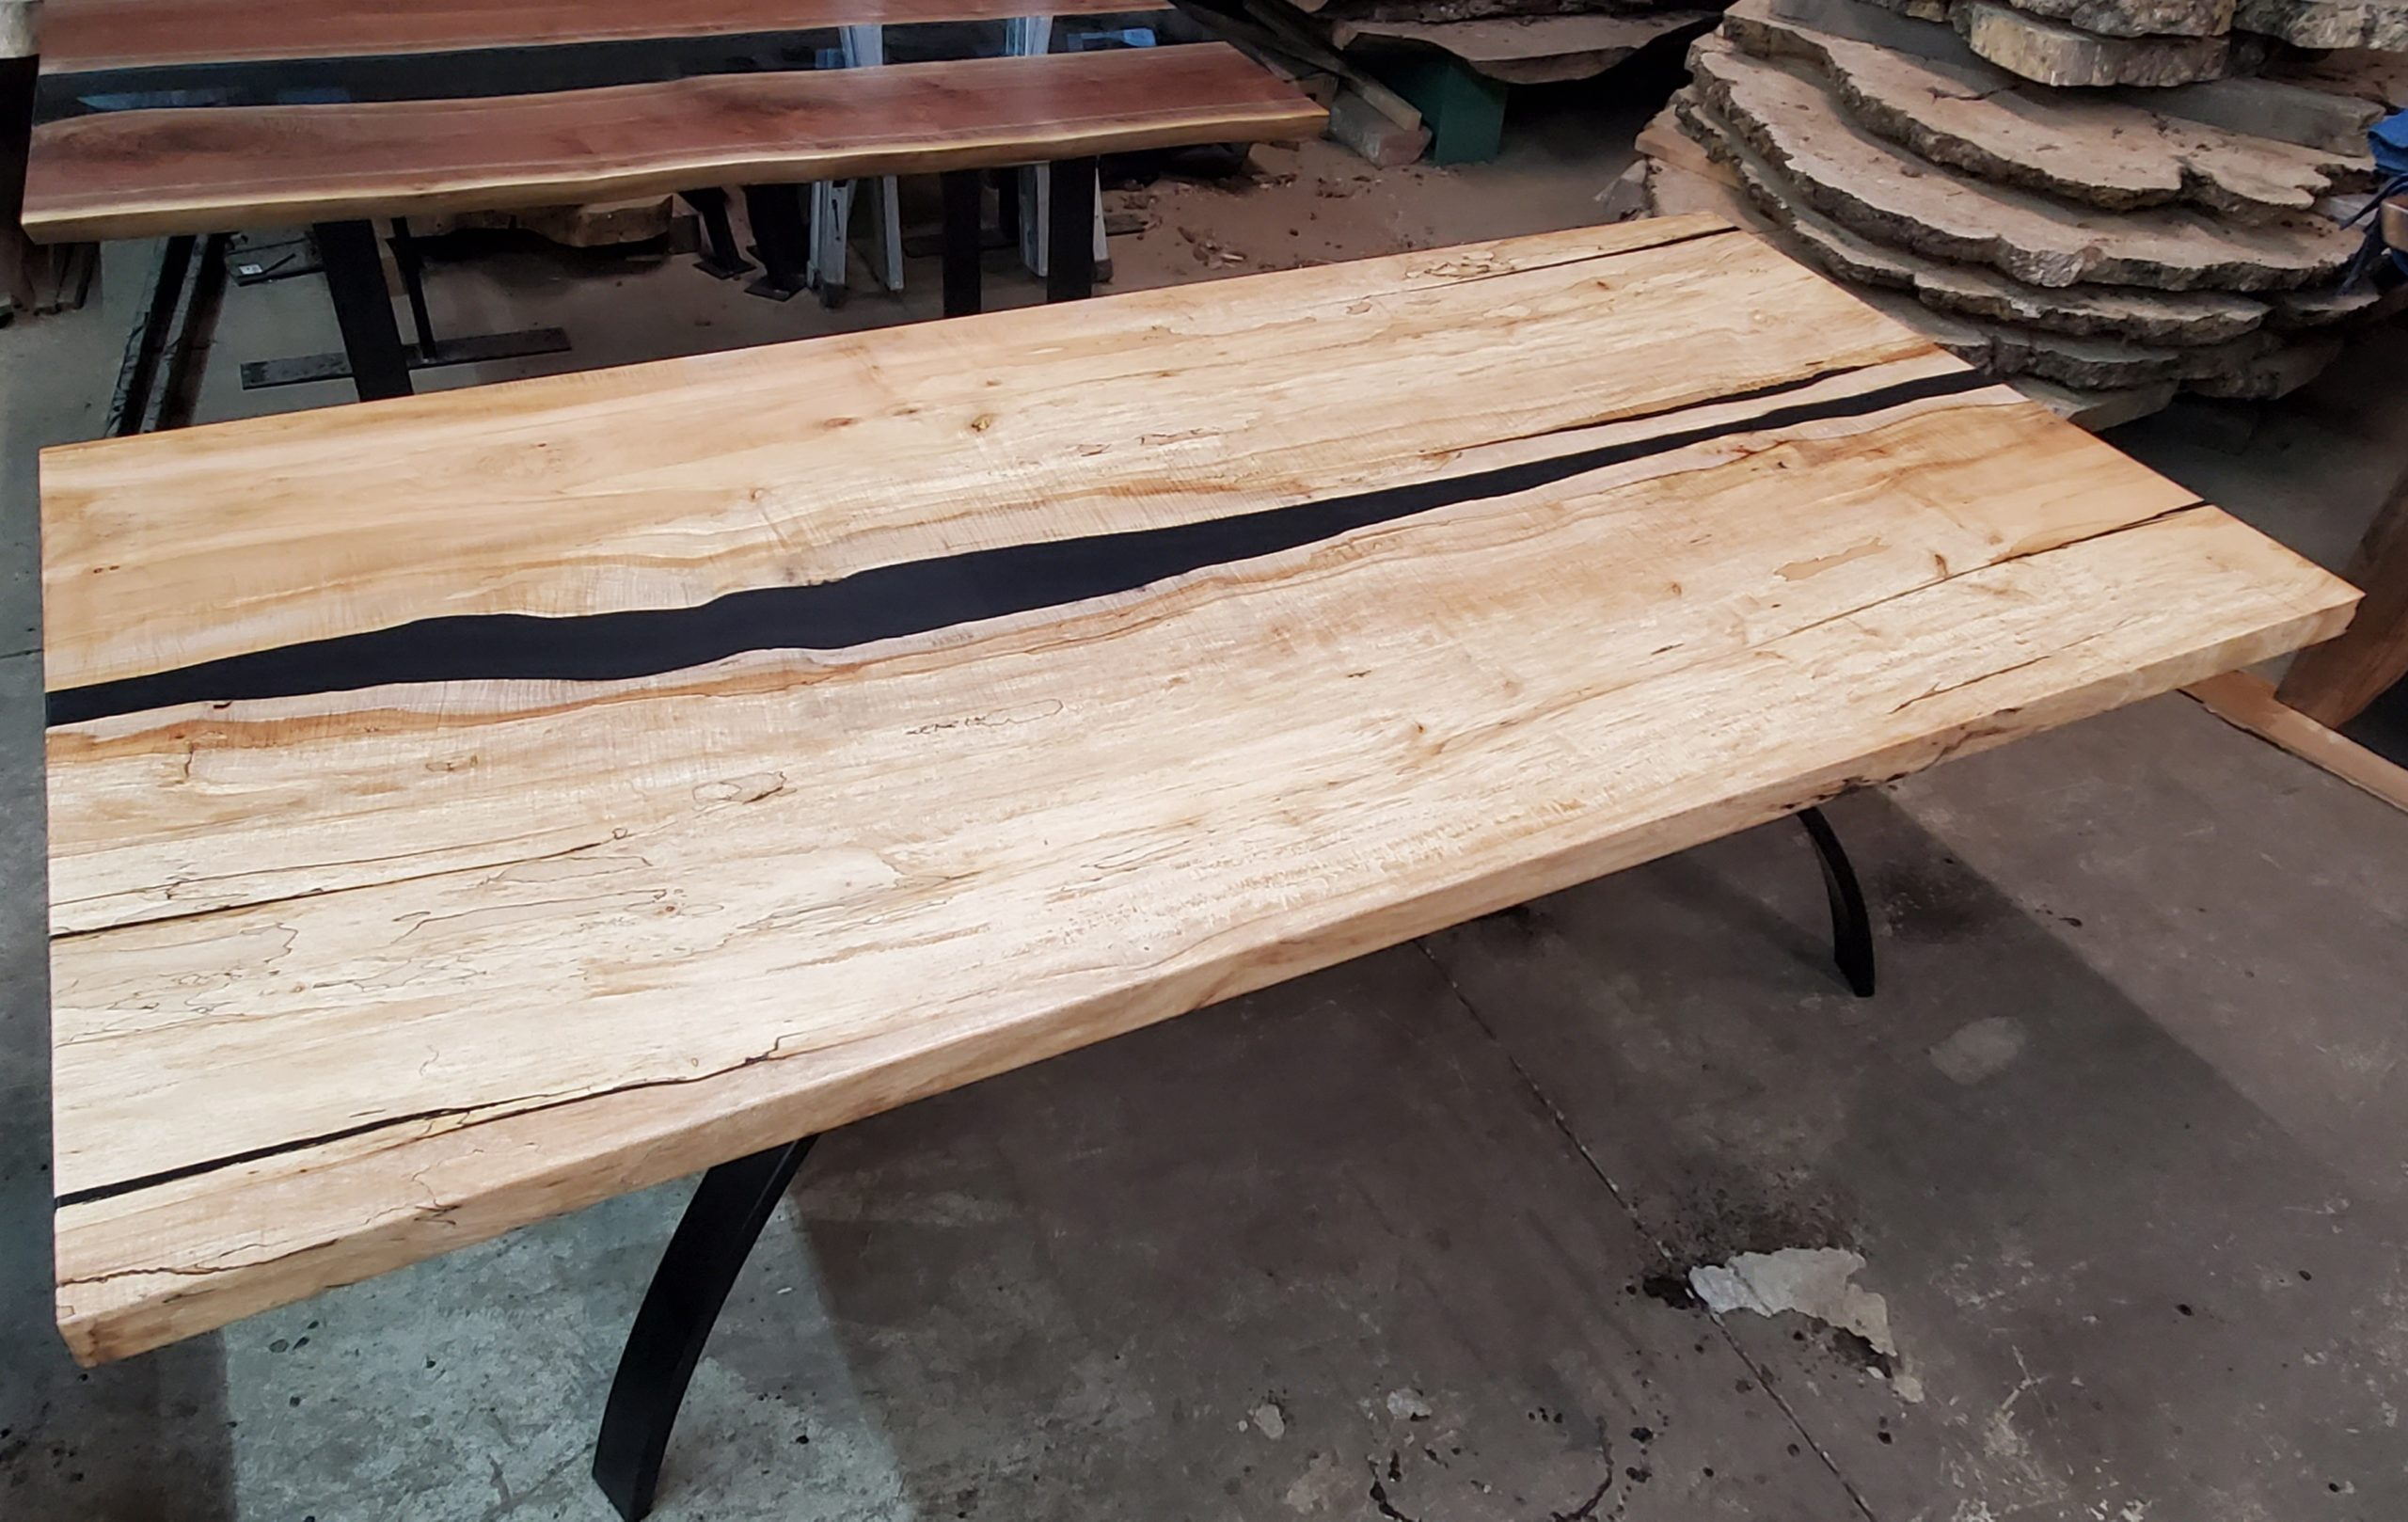 Spalted Maple Merge River Table